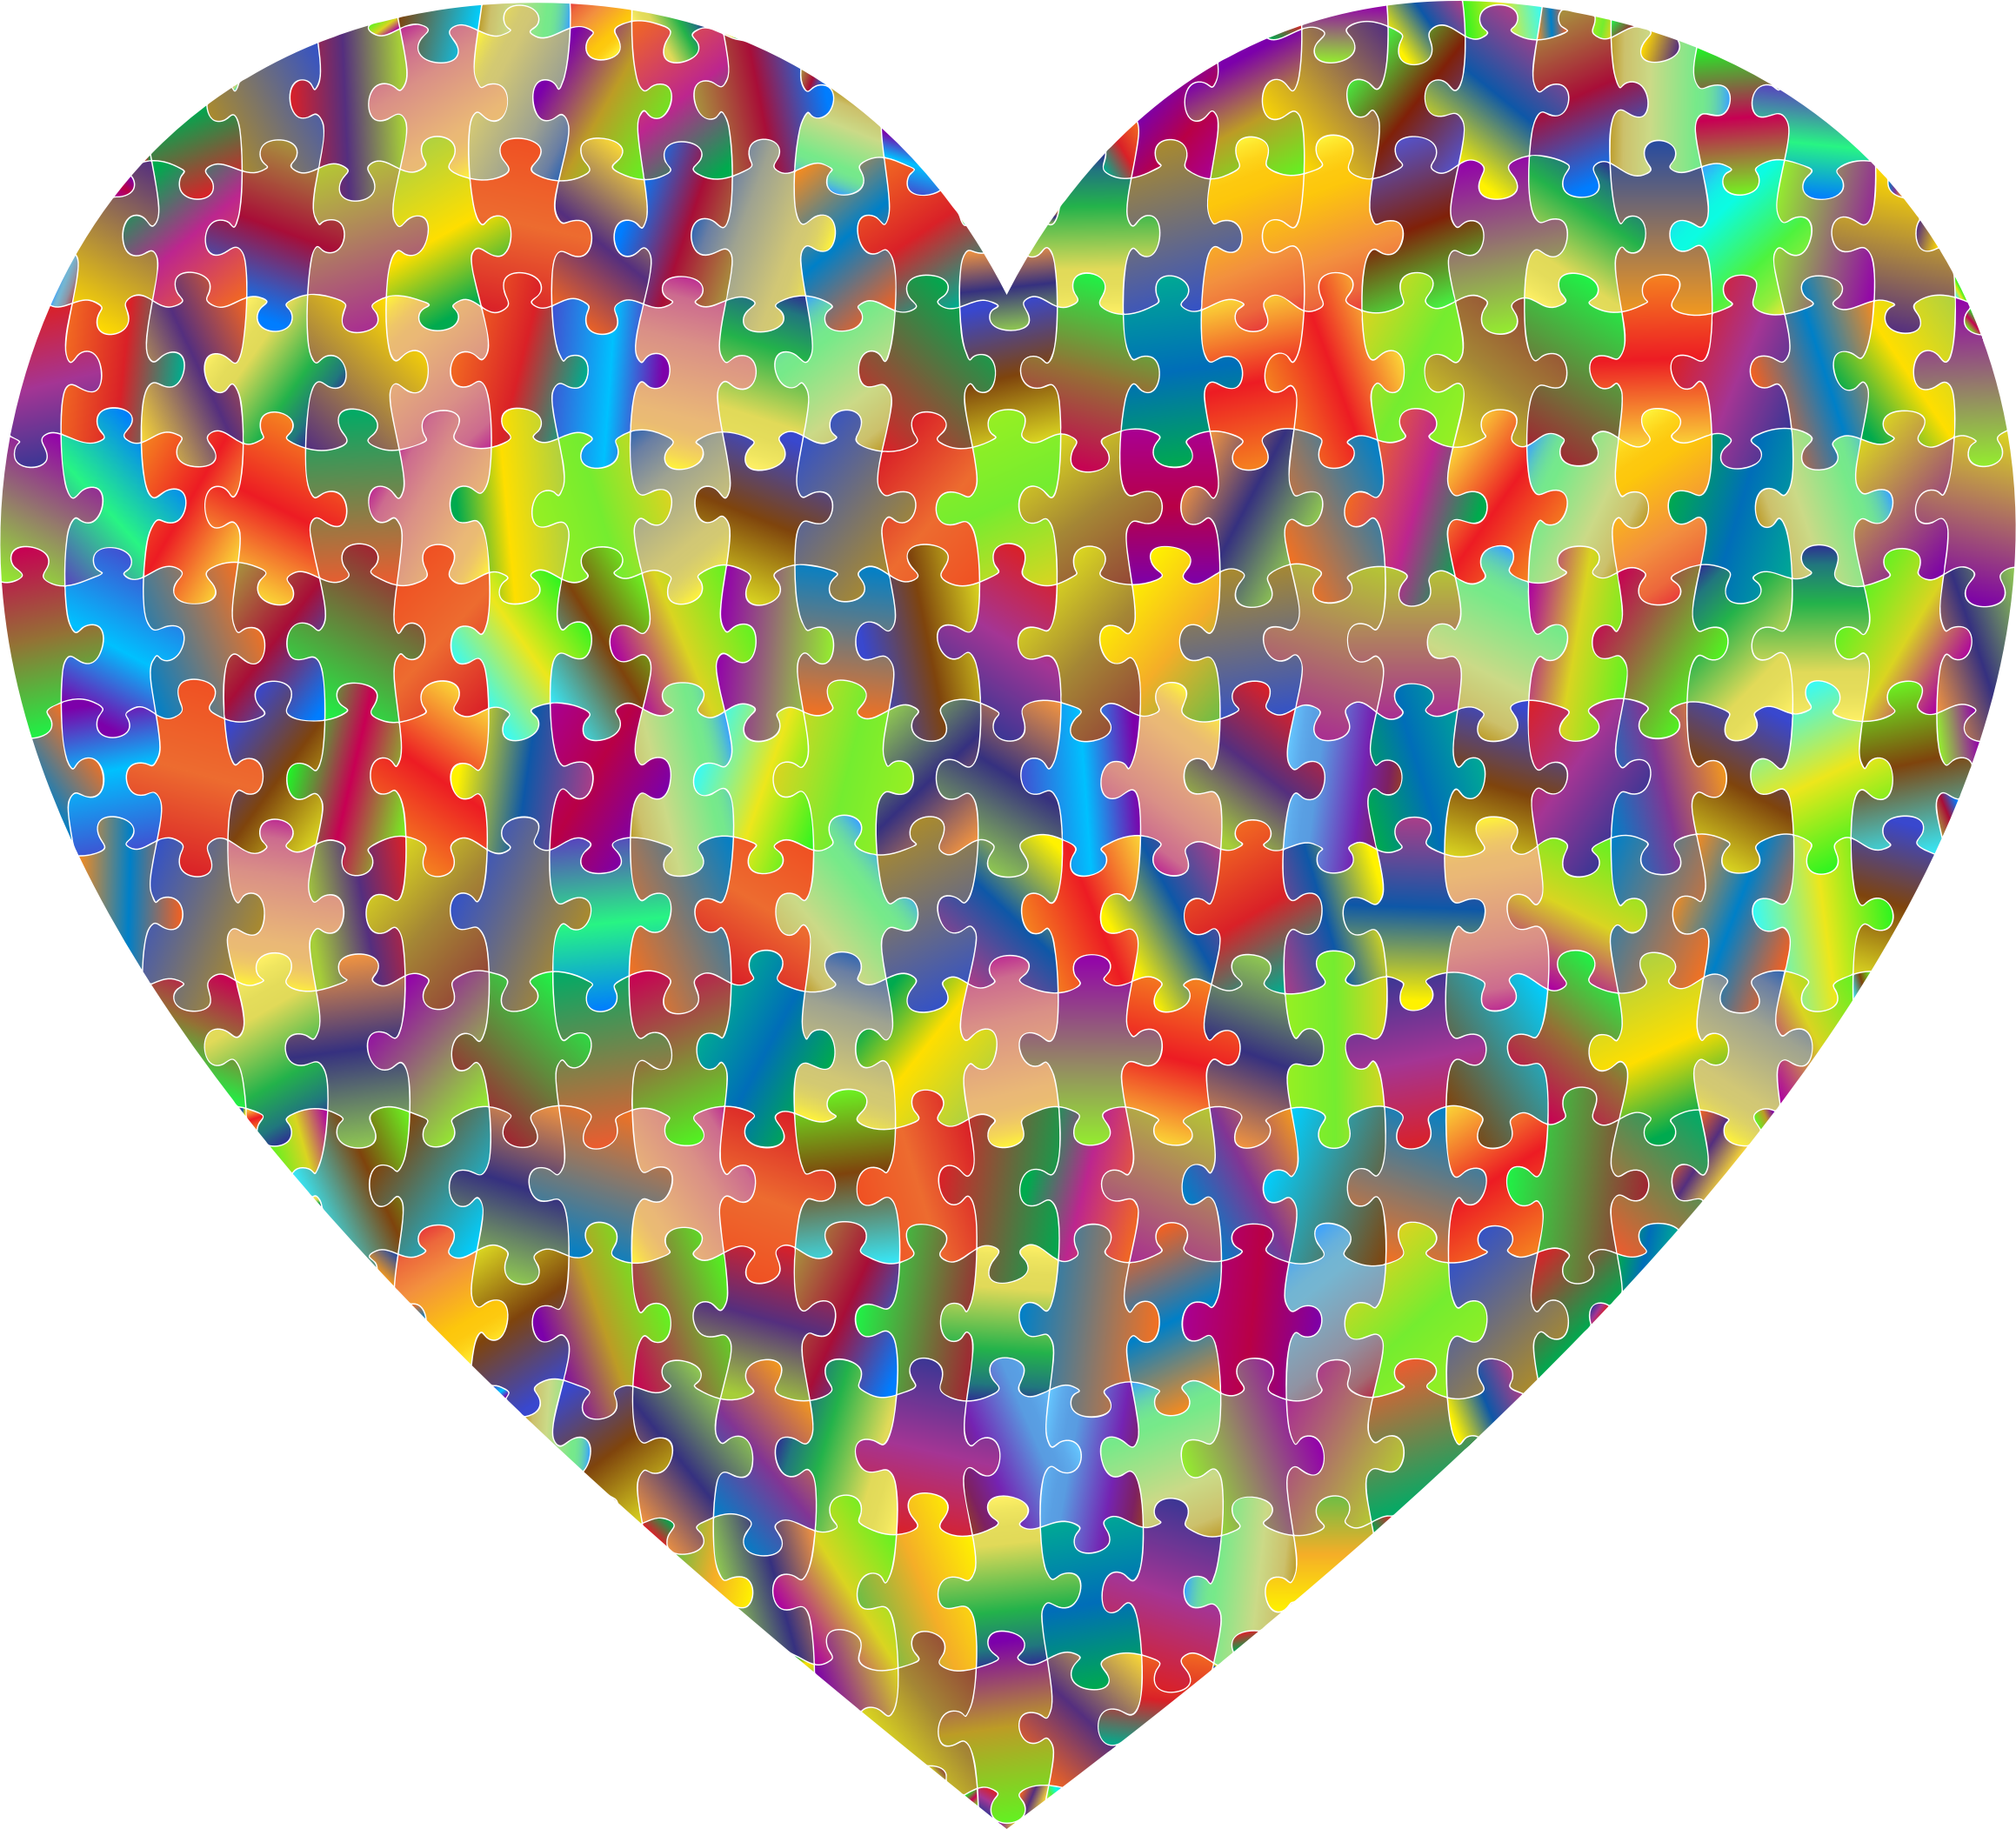 Colorful Puzzle Heart 7 by GDJ